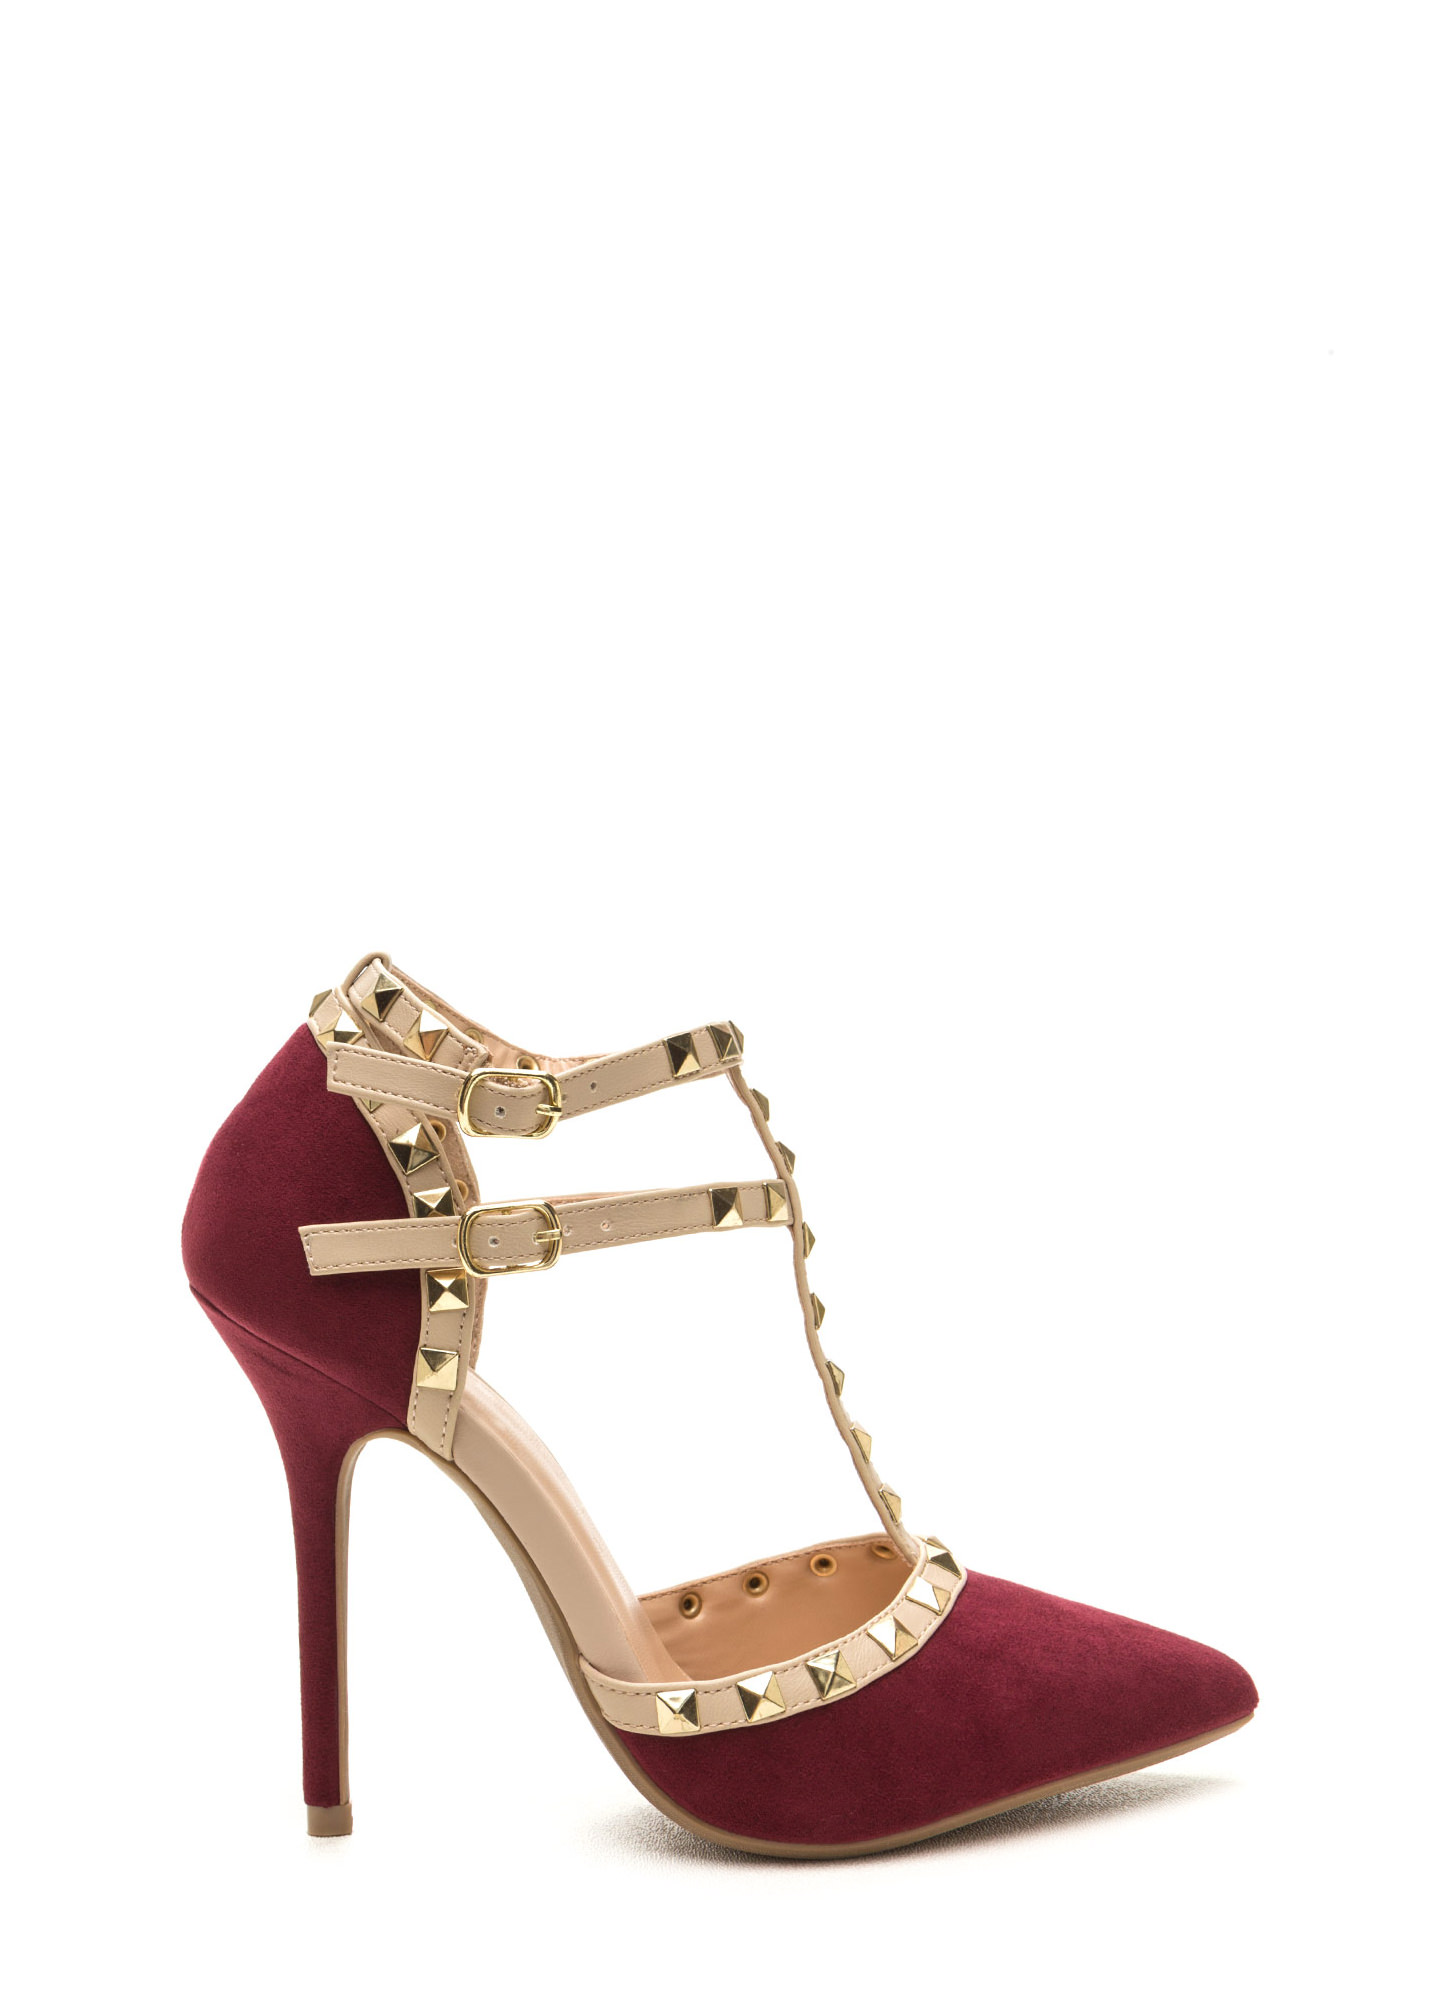 To The T Pointy Heels BURGUNDY